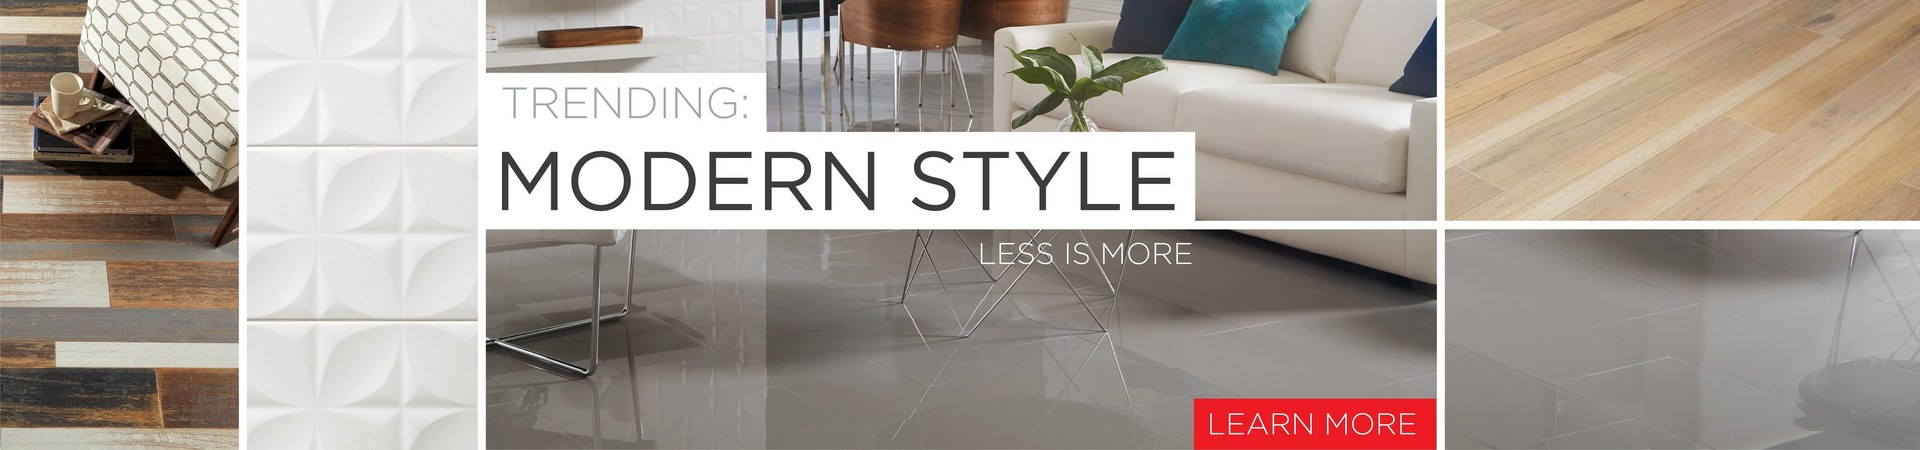 Floor decor high quality flooring and tile modern style dailygadgetfo Images